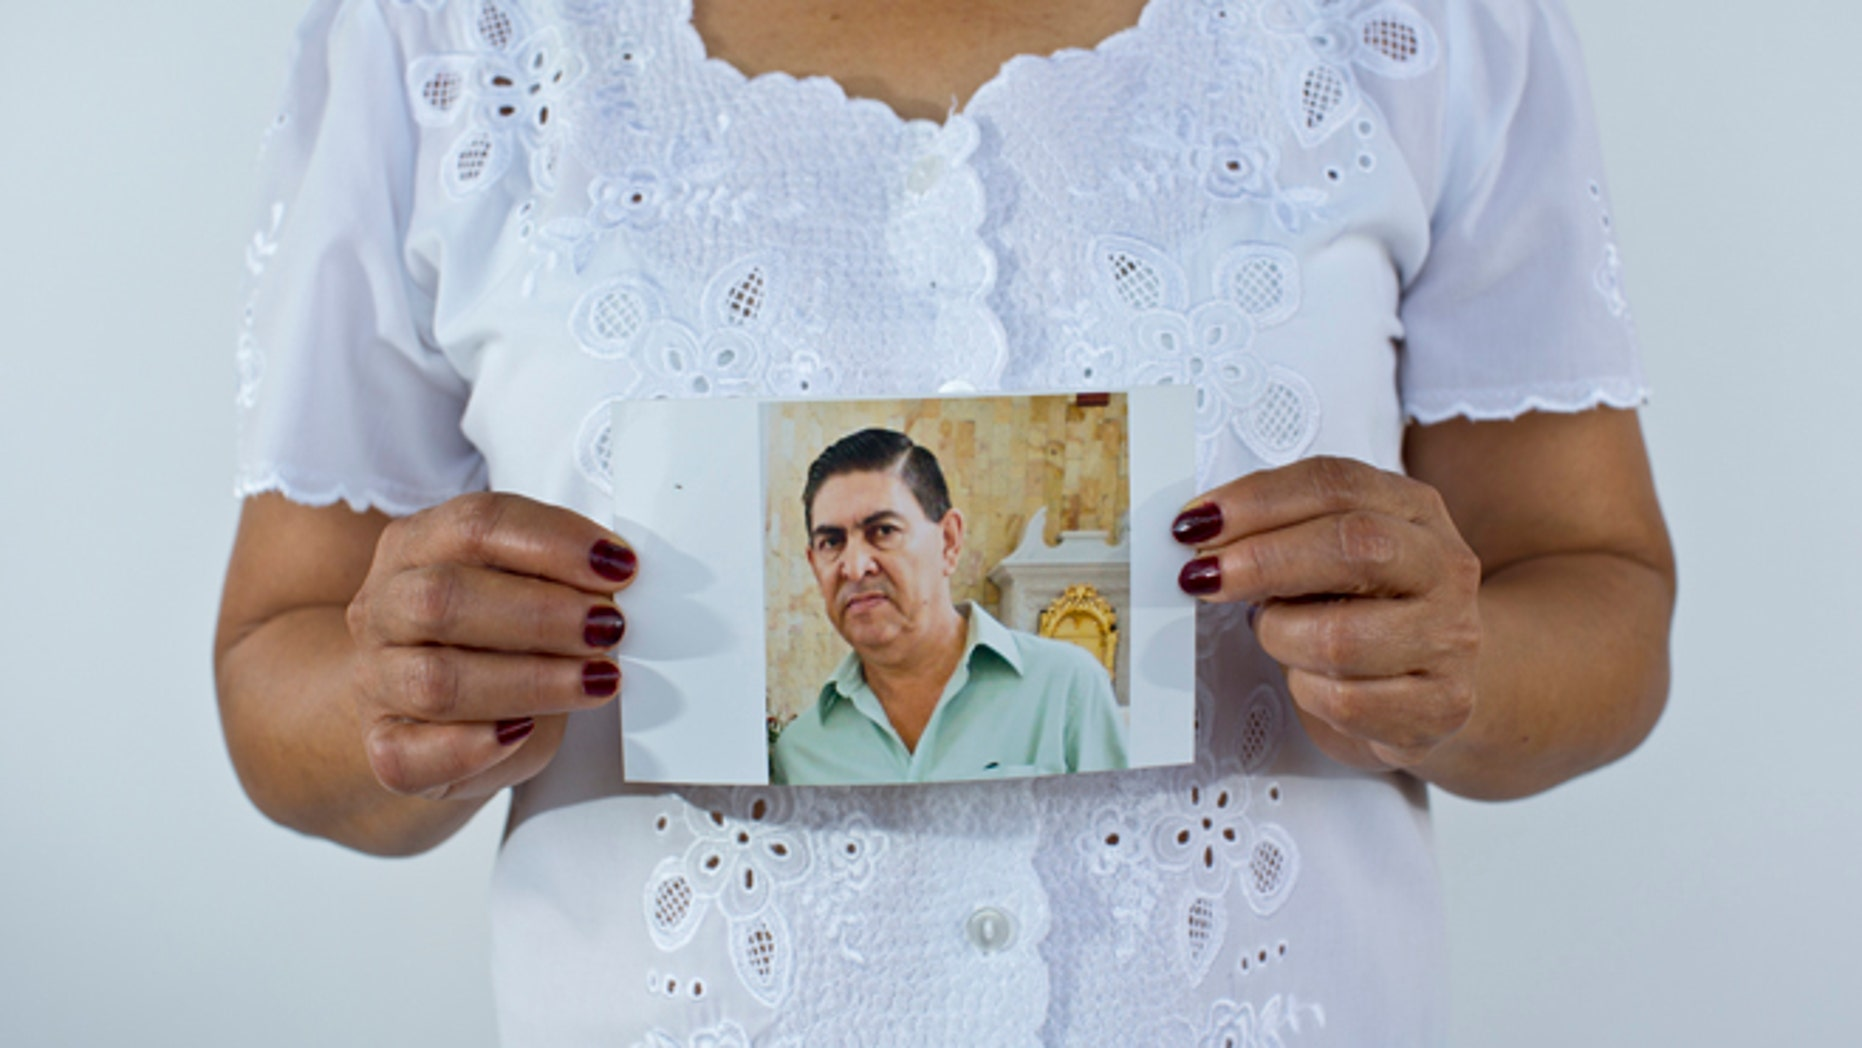 In this June 2, 2015 photo, Yolanda Alvarez Antúnez holds up an image of her husband, Luis Alberto Ramiíez Castillo, in Iguala, Mexico. Her husband was 54 years old when he was kidnapped by armed men outside of his home on Jan. 10, 2013. While trying to pay for the ransom, Yolanda herself was taken by the kidnappers and had to pay extra to be freed. (AP Photo/Dario Lopez-Mills)